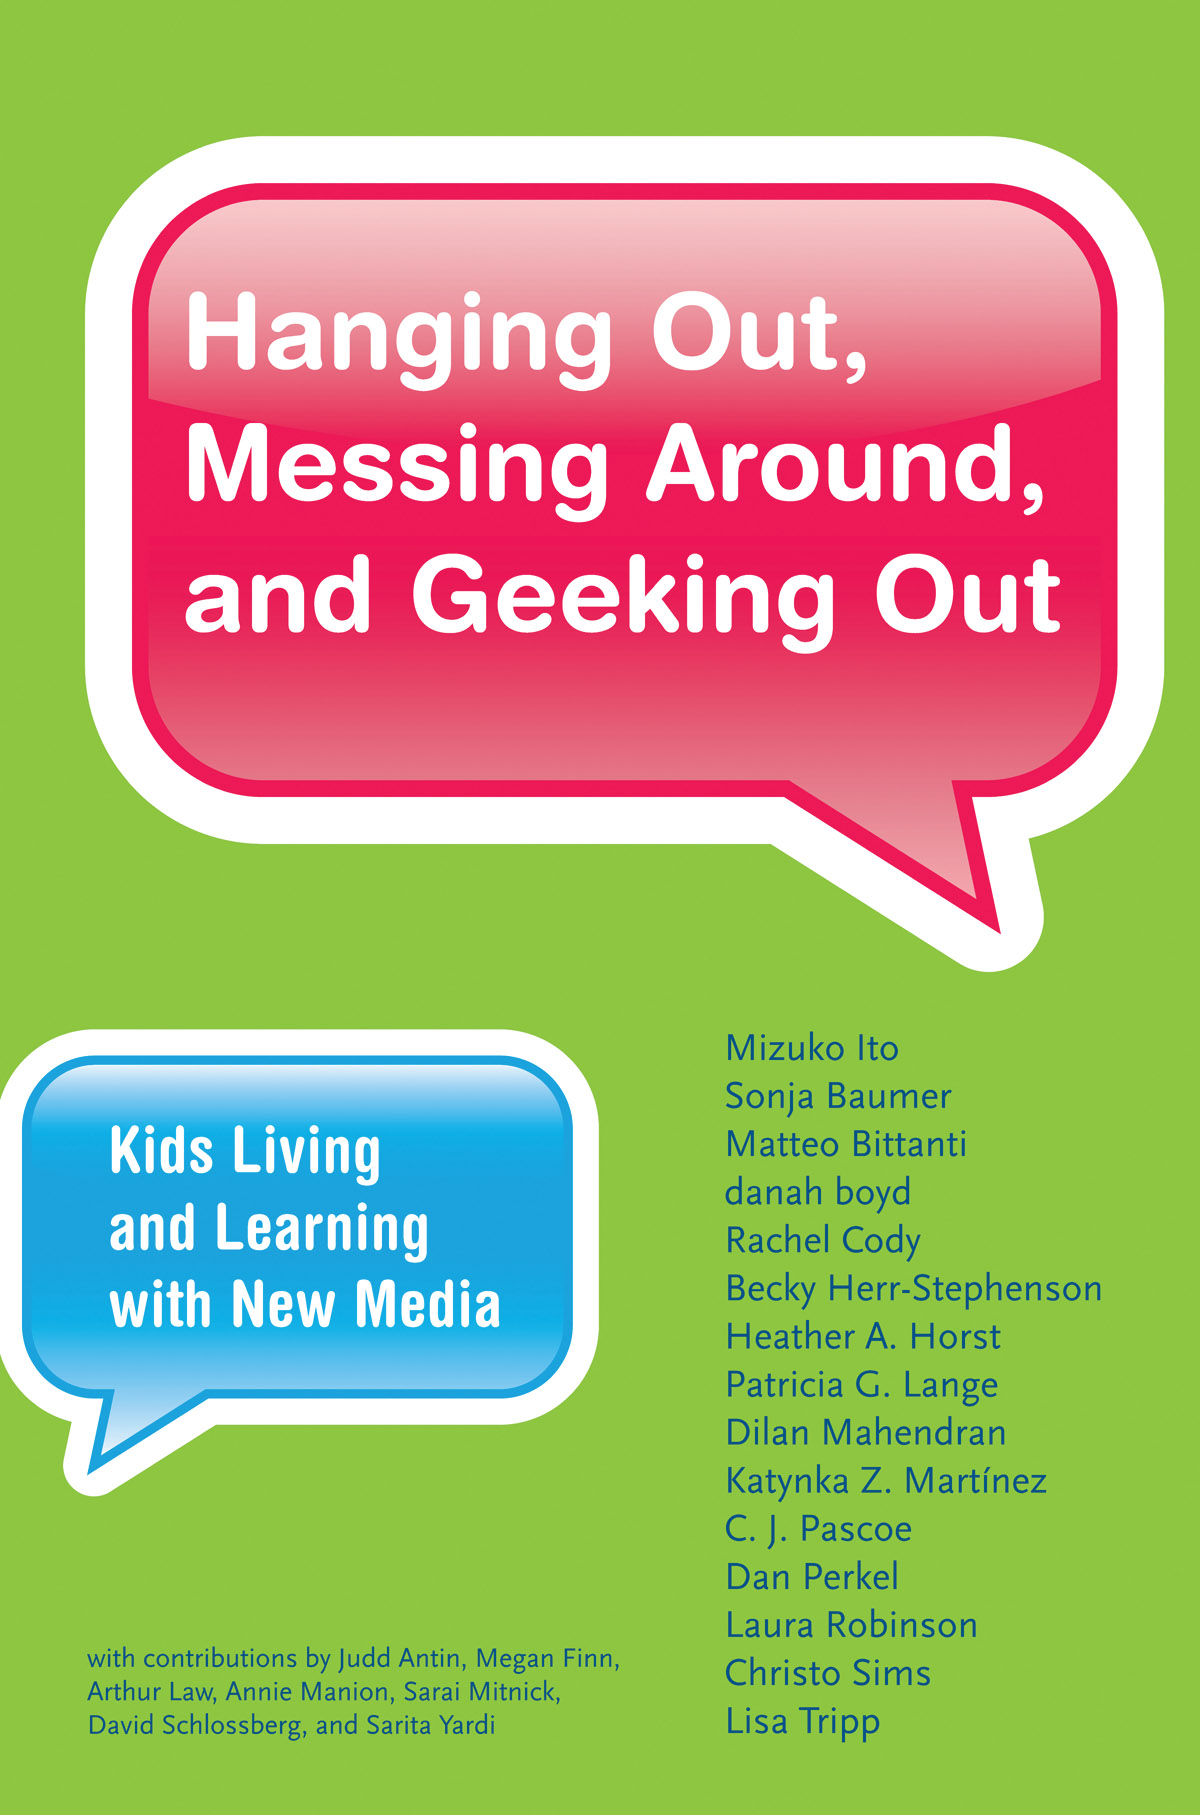 Download Free e-book: Hanging Out, Messing Around, Geeking Out